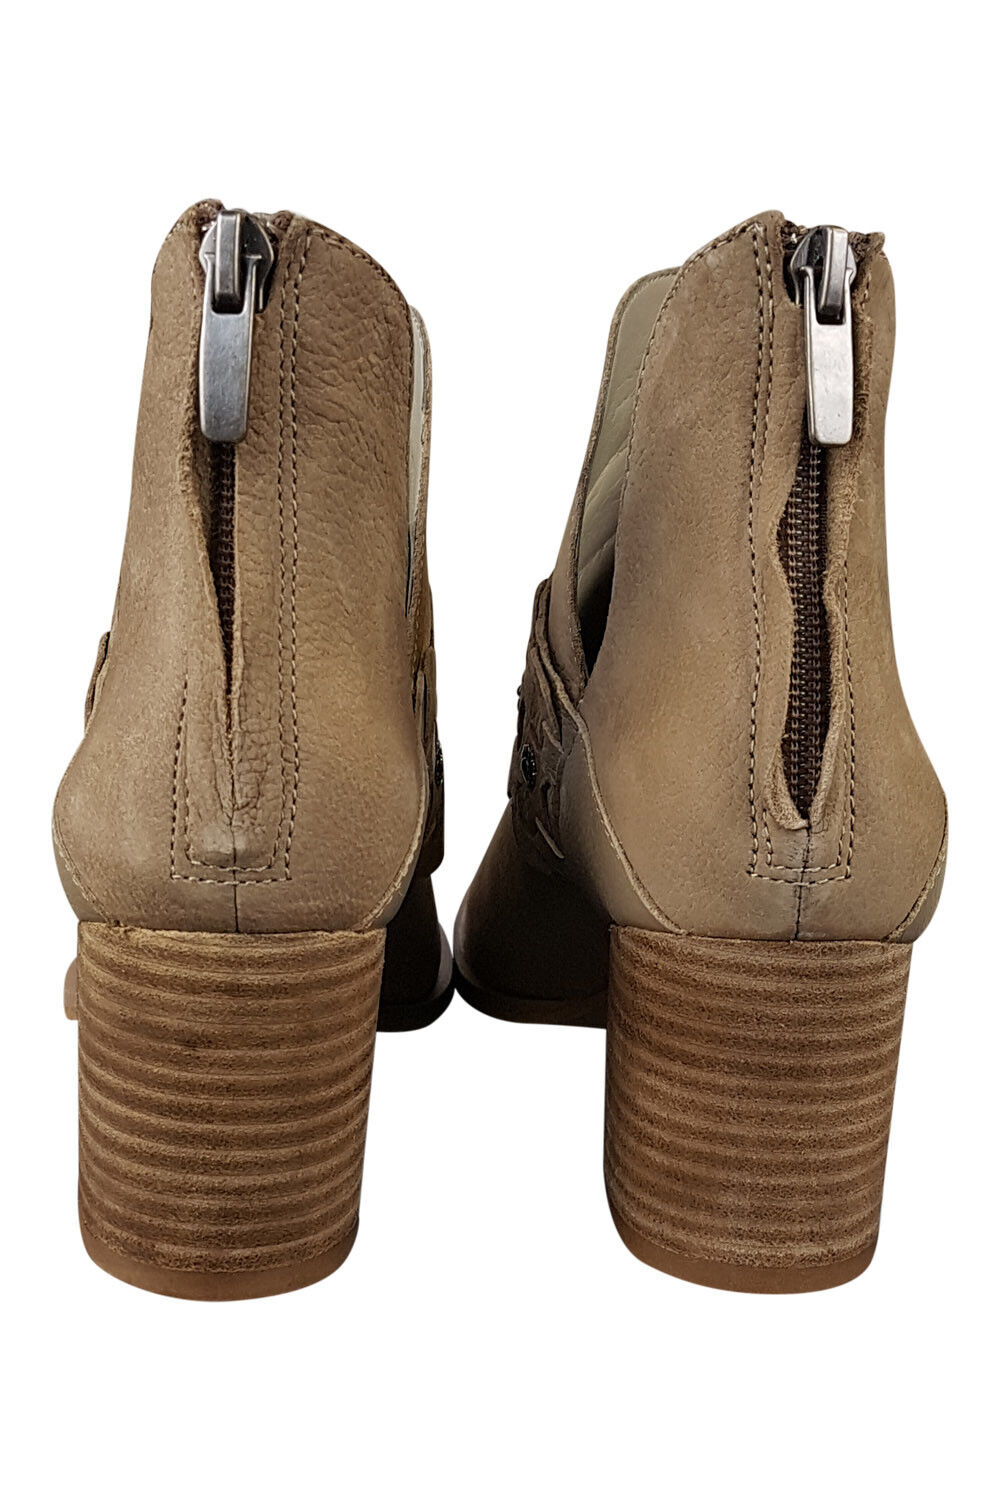 *NINE WEST* DANBIA TAN M) BROWN ANKLE BOOTS (6 M) TAN 149e9f